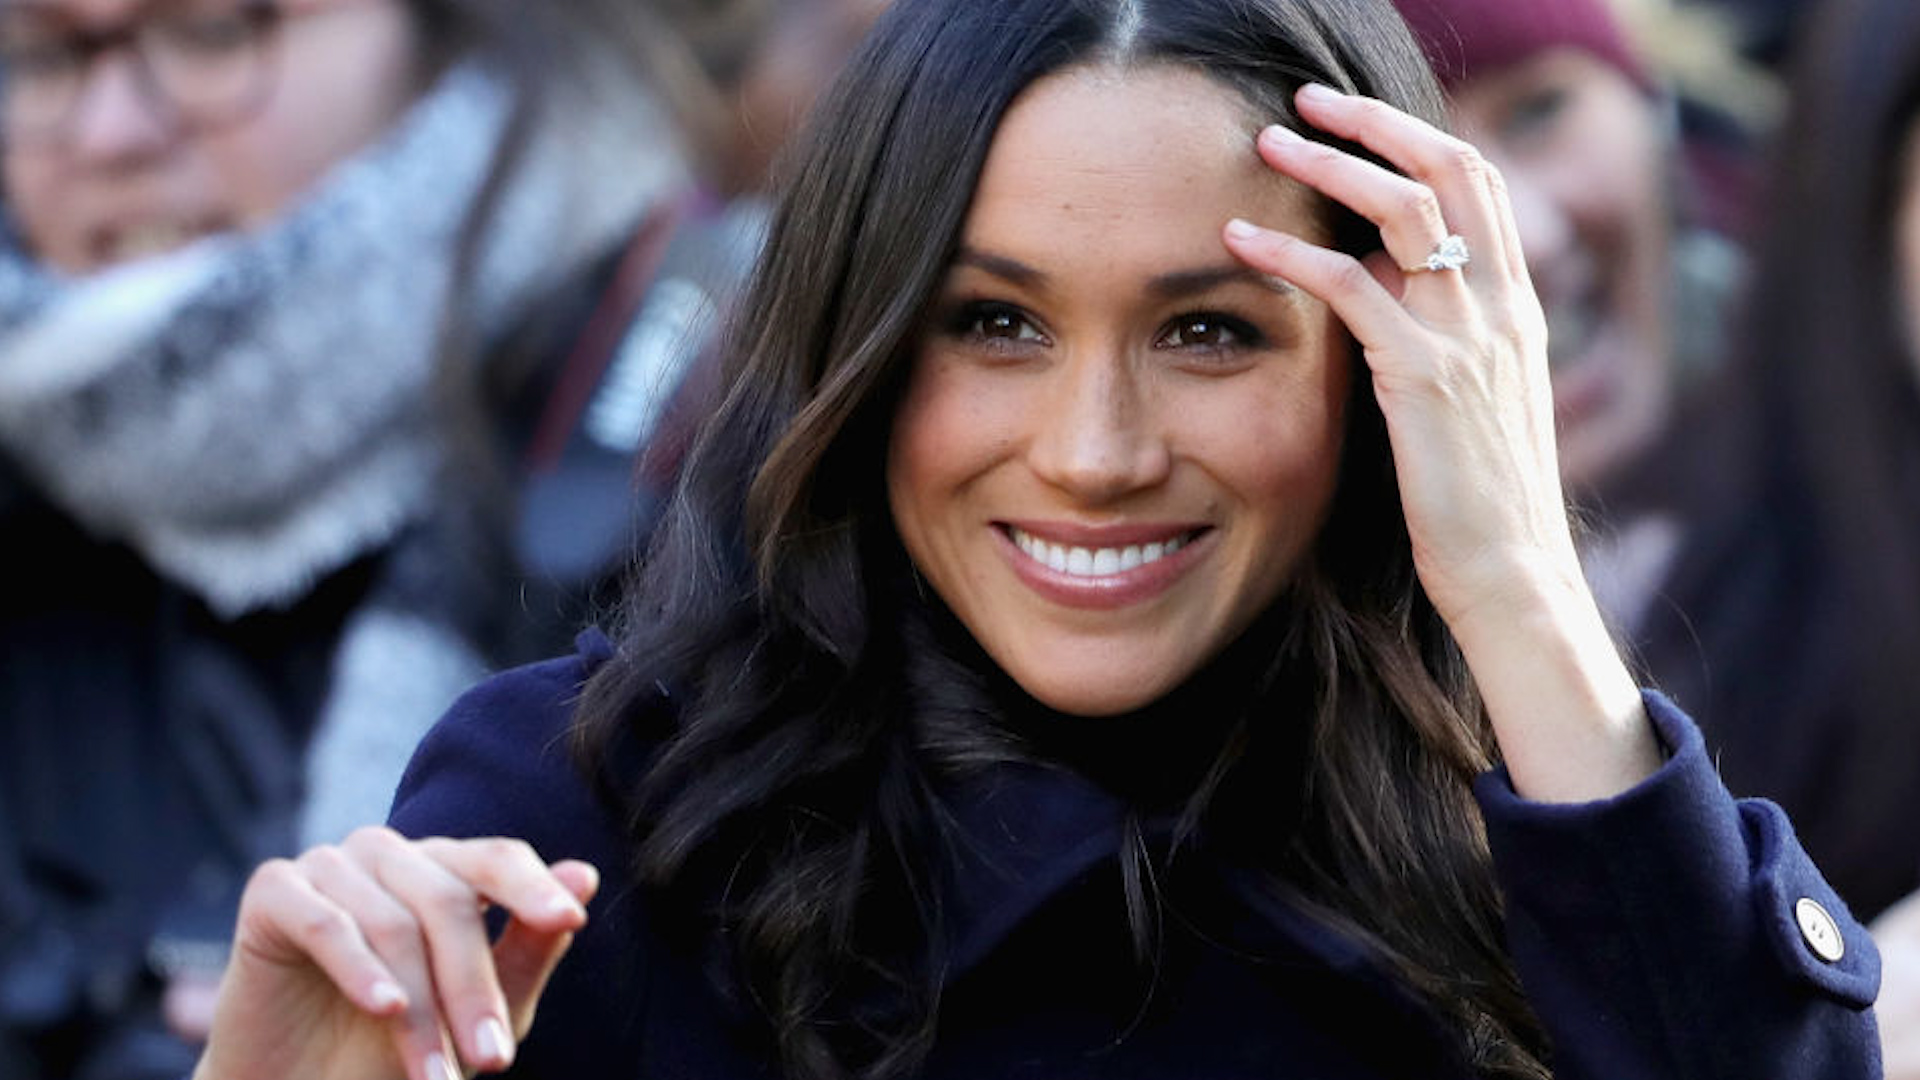 The Real Reason Why Kate Middleton and Doria Ragland Skipped Meghan Markle's Baby Shower